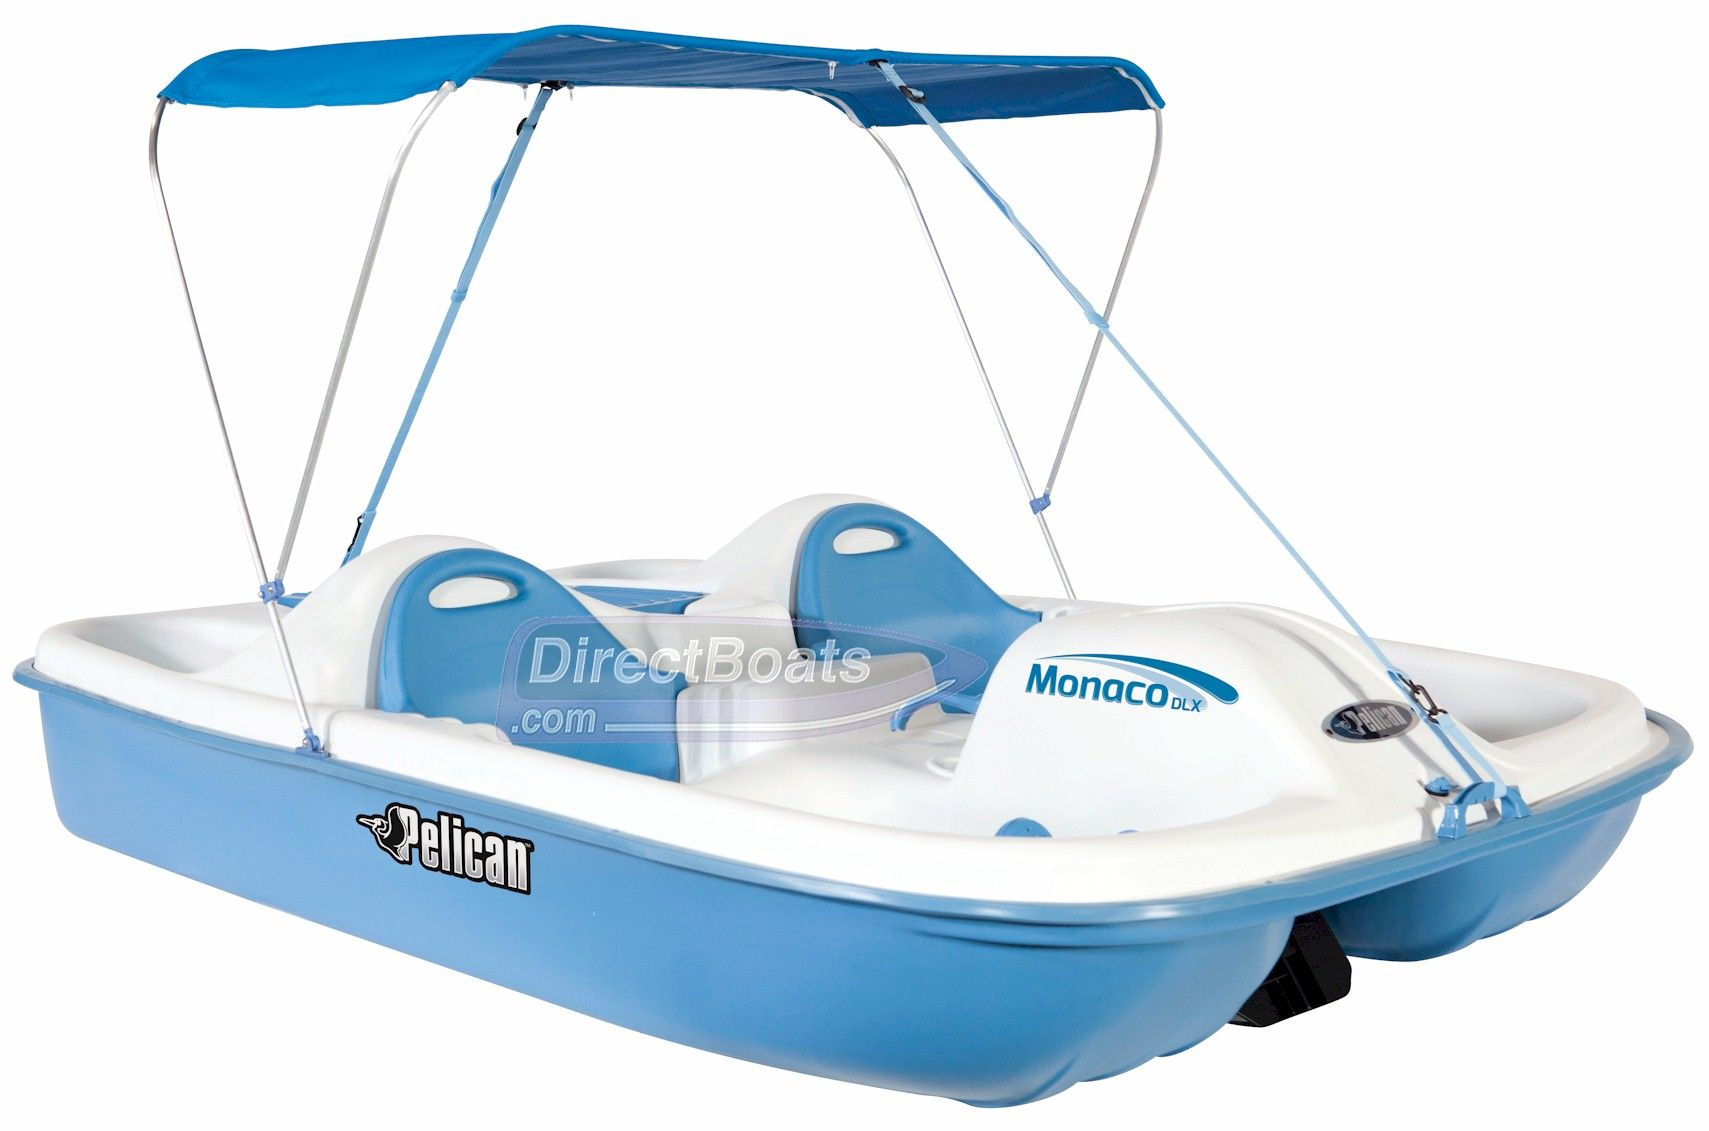 The Pelican Monaco DLX Pedal Boat offers room for 2 adults and 3 children and is  sc 1 st  Pinterest & The Pelican Monaco DLX Pedal Boat offers room for 2 adults and 3 ...